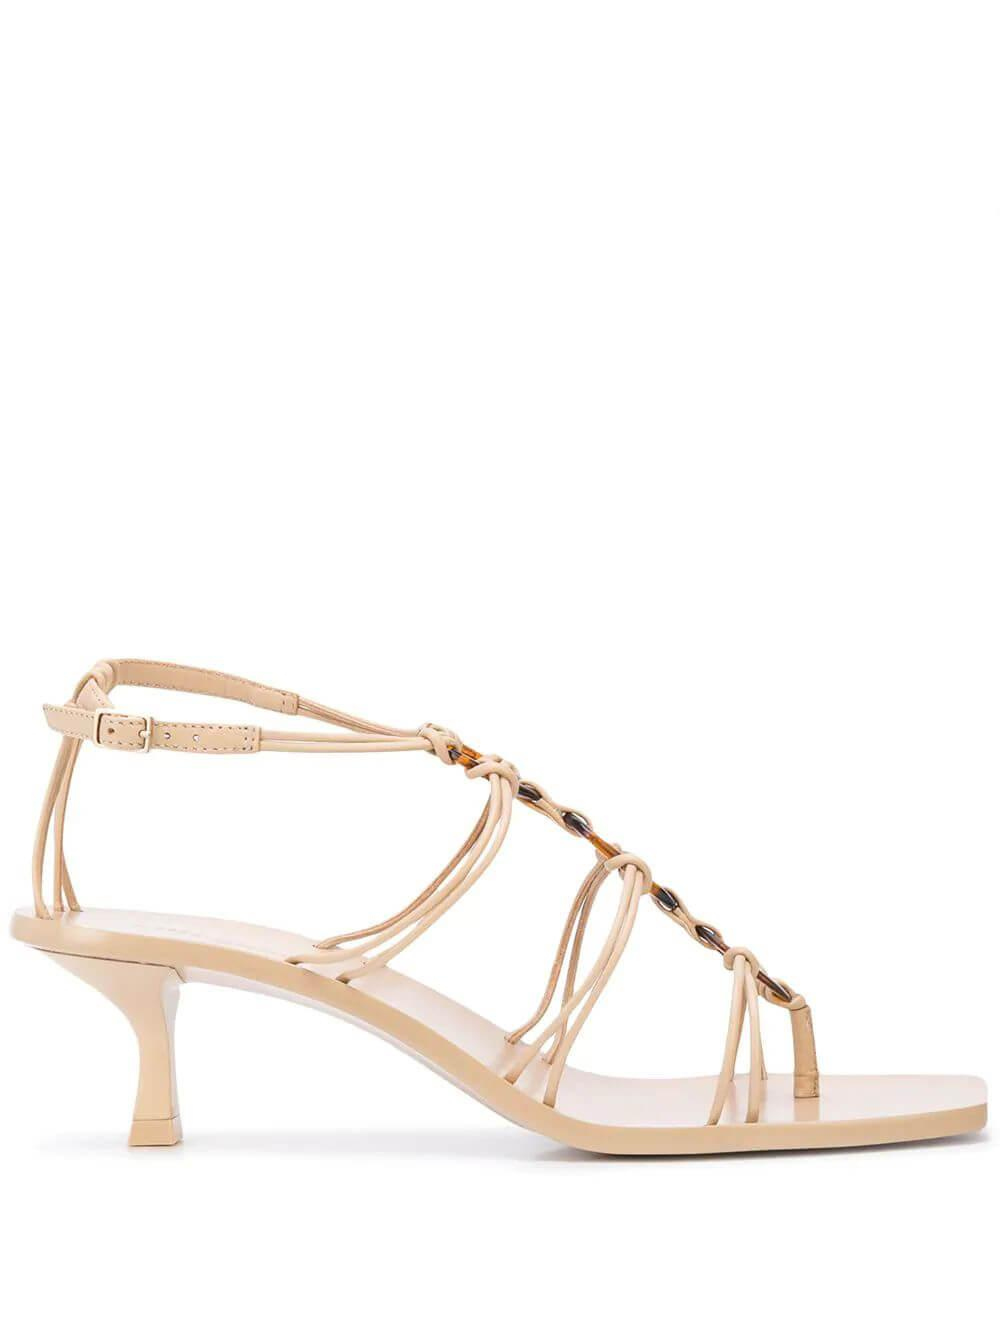 Ziba Strappy Knotted Sandal With Kitten Heel